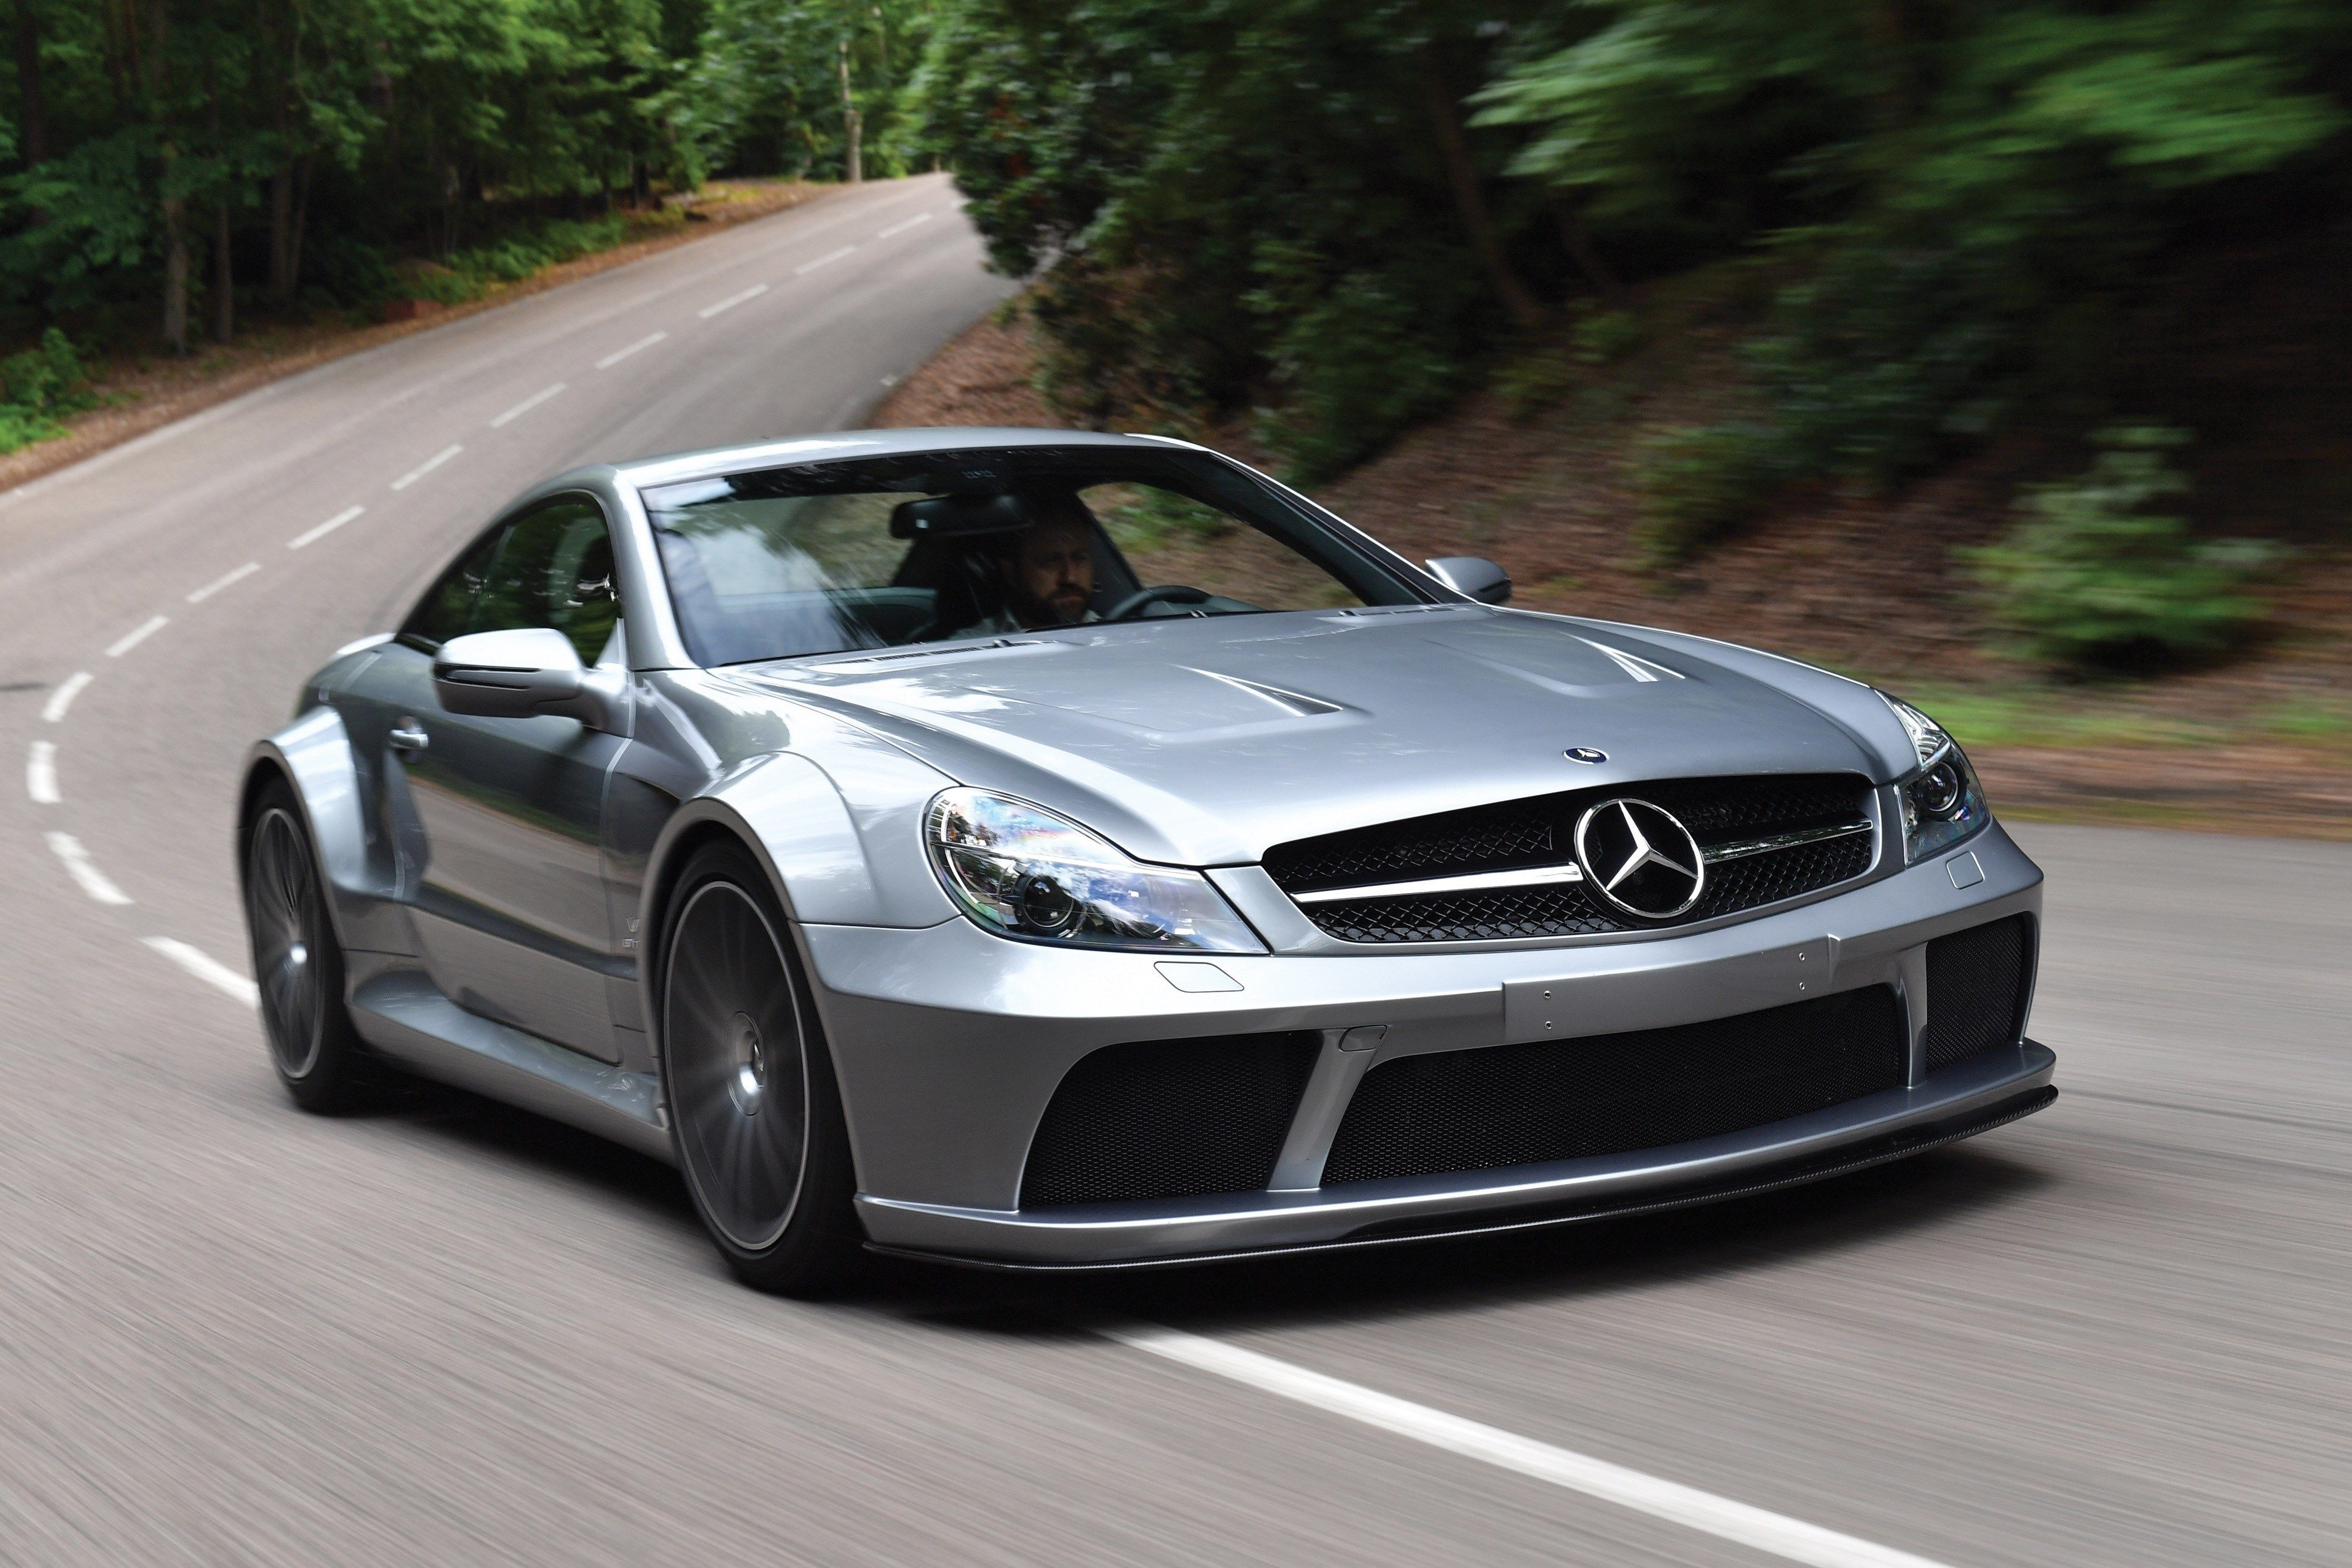 pinterest benz cars details pin and coup gt motorcycles amg k t rer mercedes